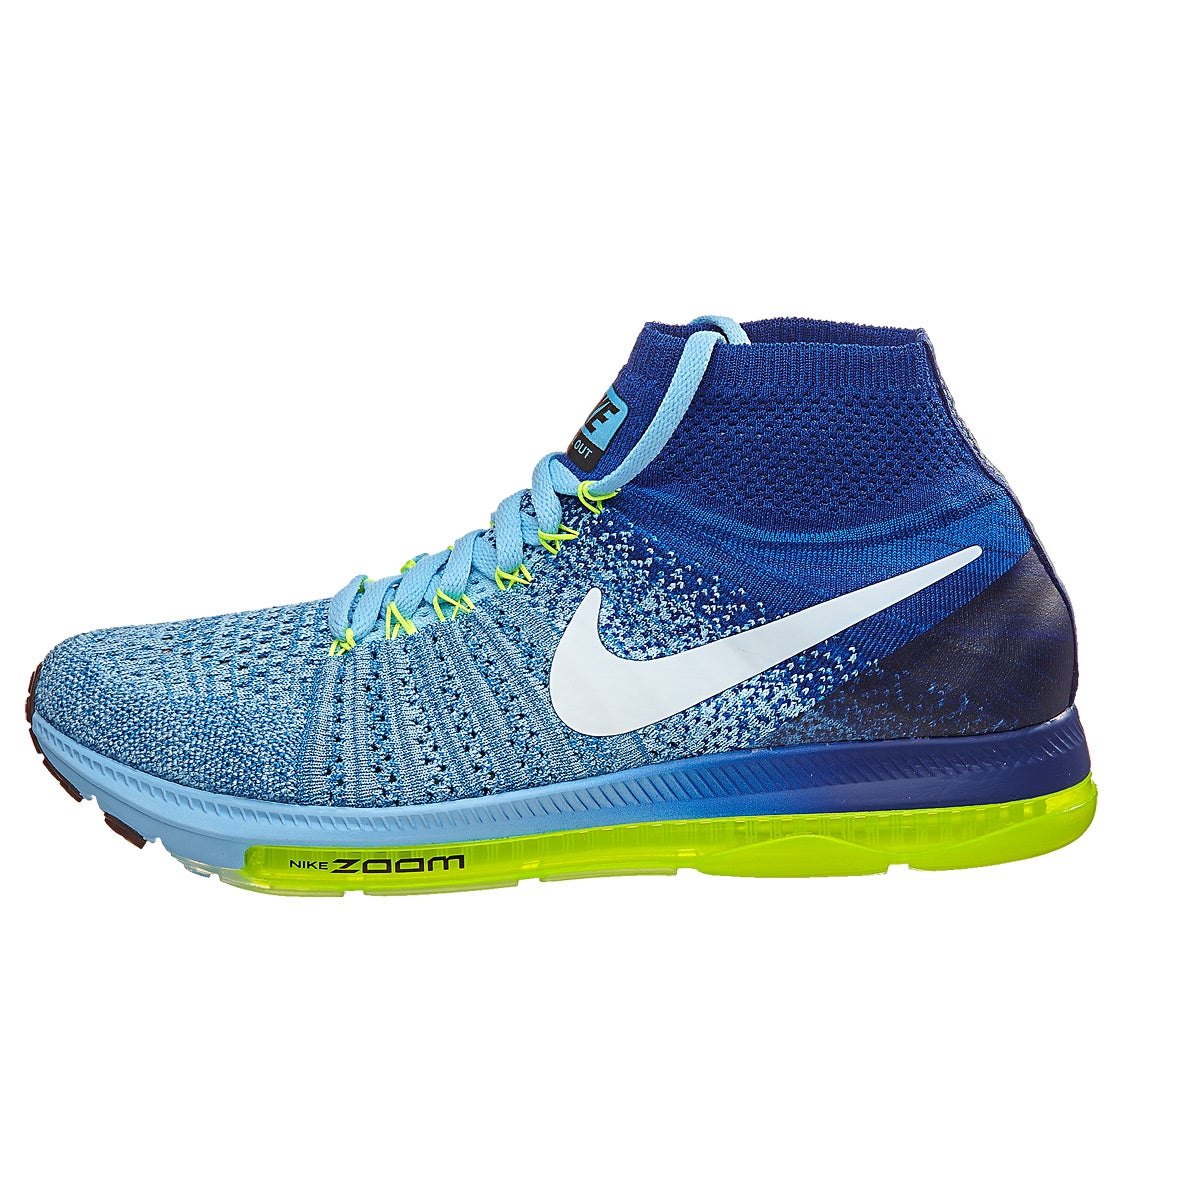 1cd7ba58e471f ... Nike Zoom All Out Flyknit Womens Shoes BlueCapWhit 360° View Running  Warehouse.